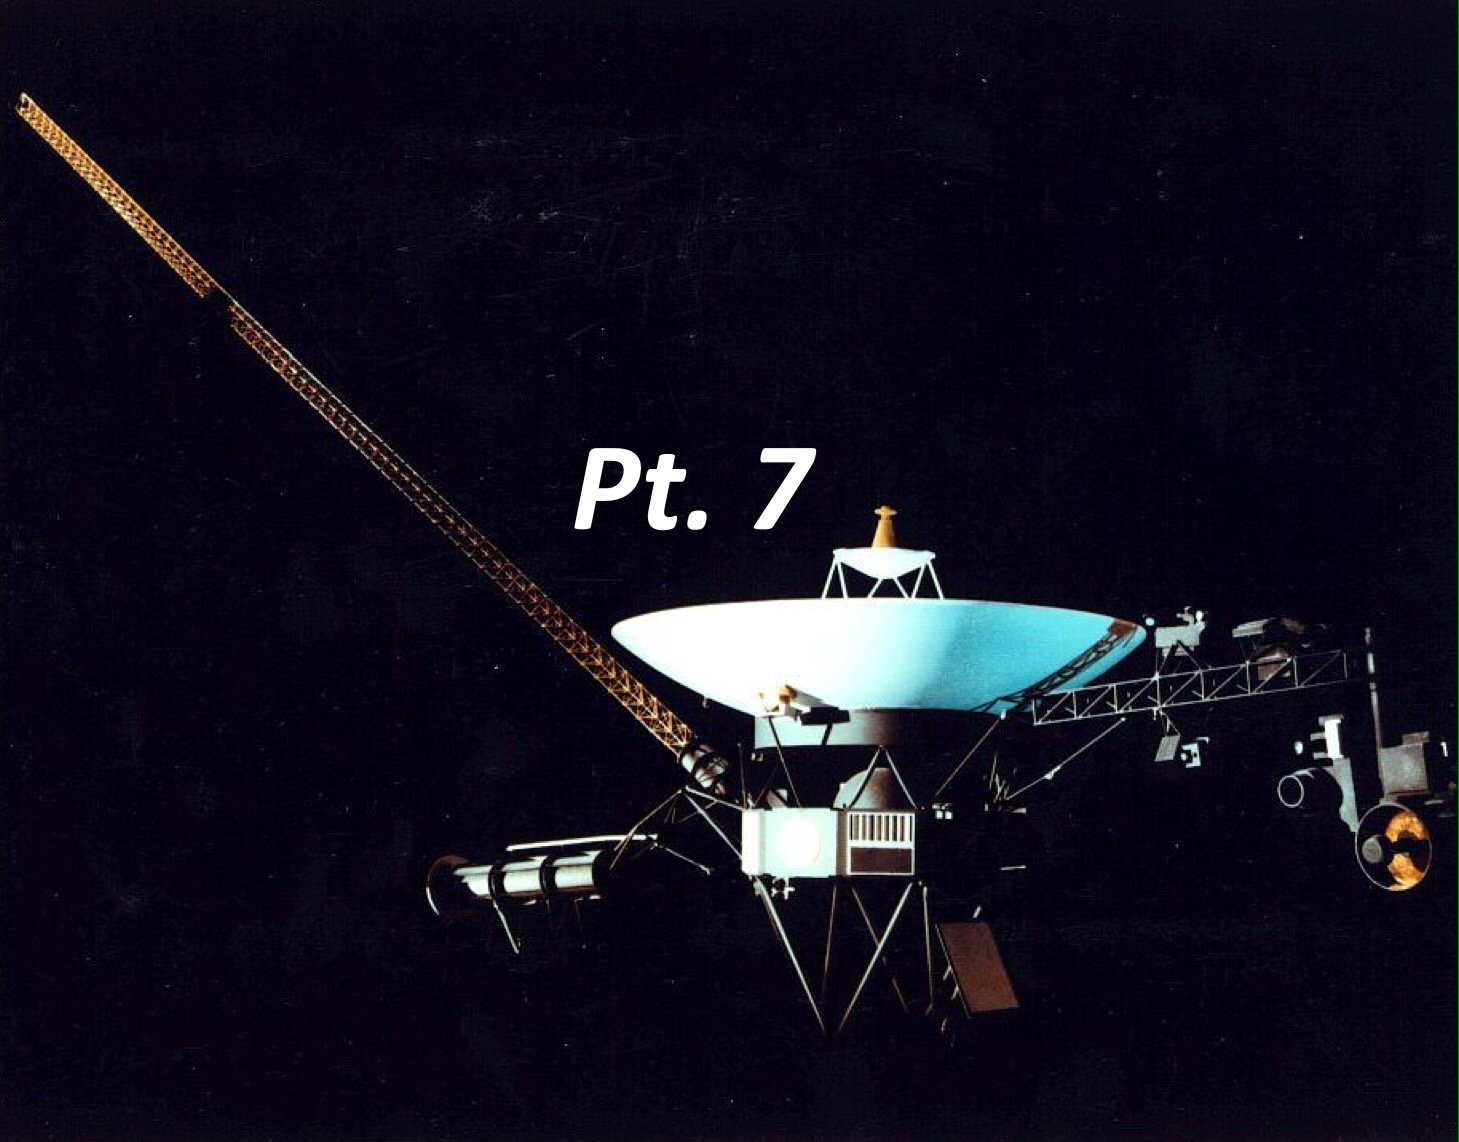 Voyager's structure: How is it made? Pt. 7